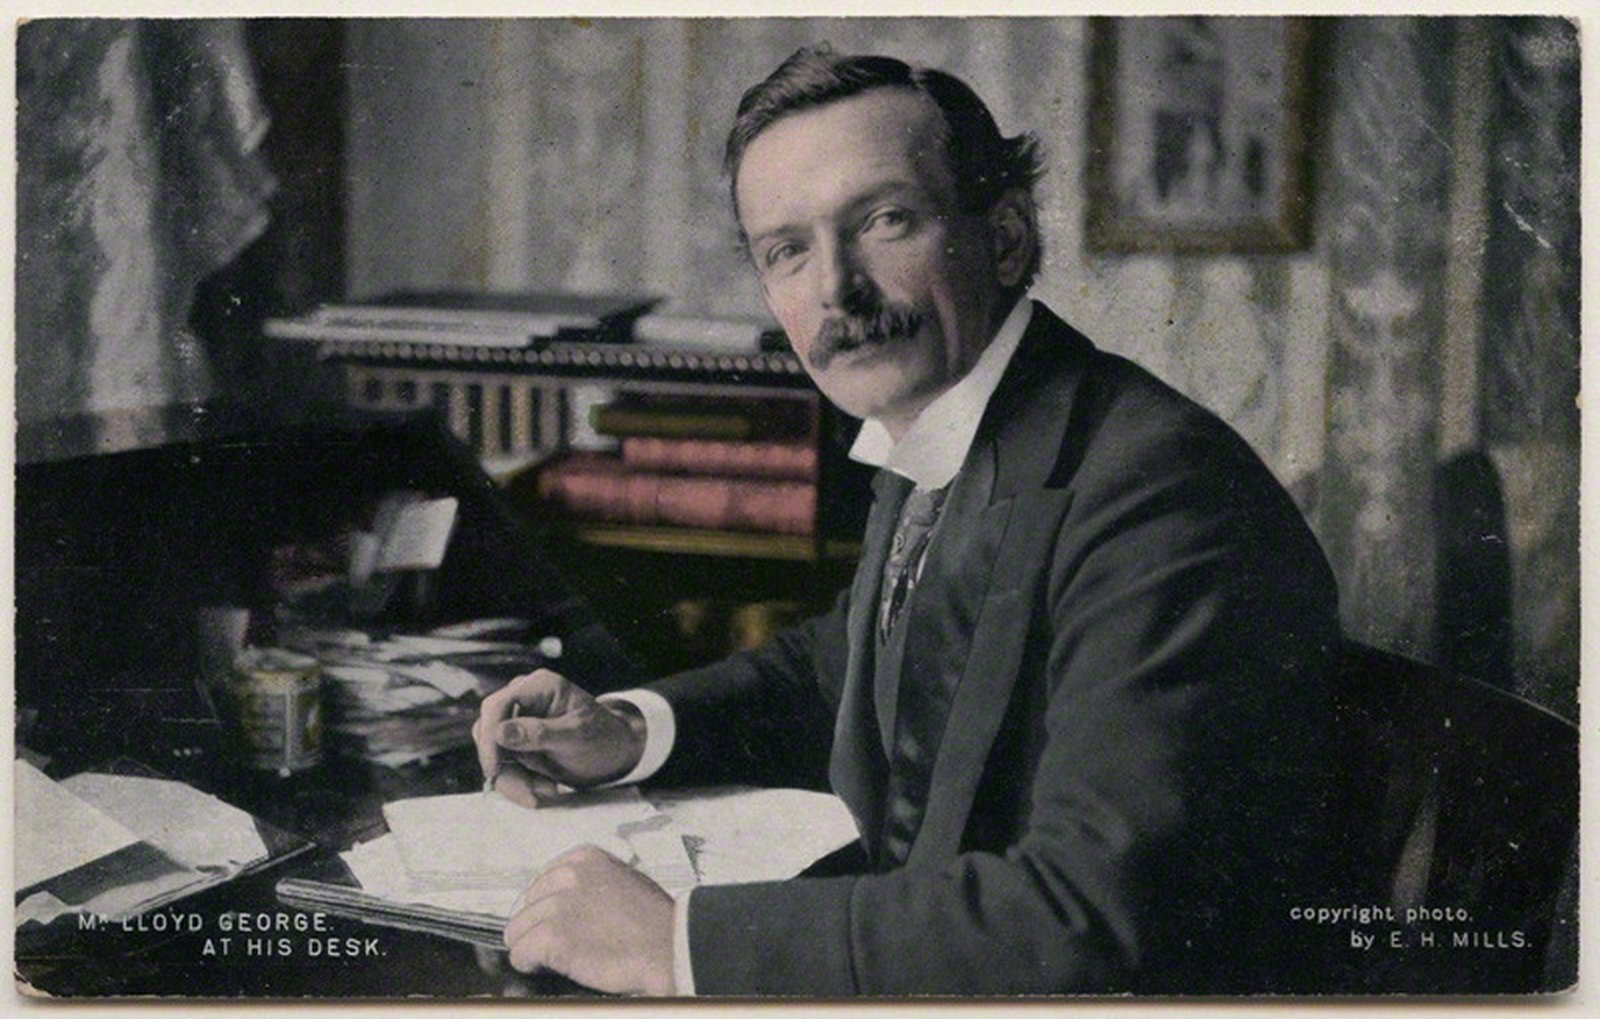 Image - David Lloyd George. The Prime Minister announced the new policy on 10 December 1920